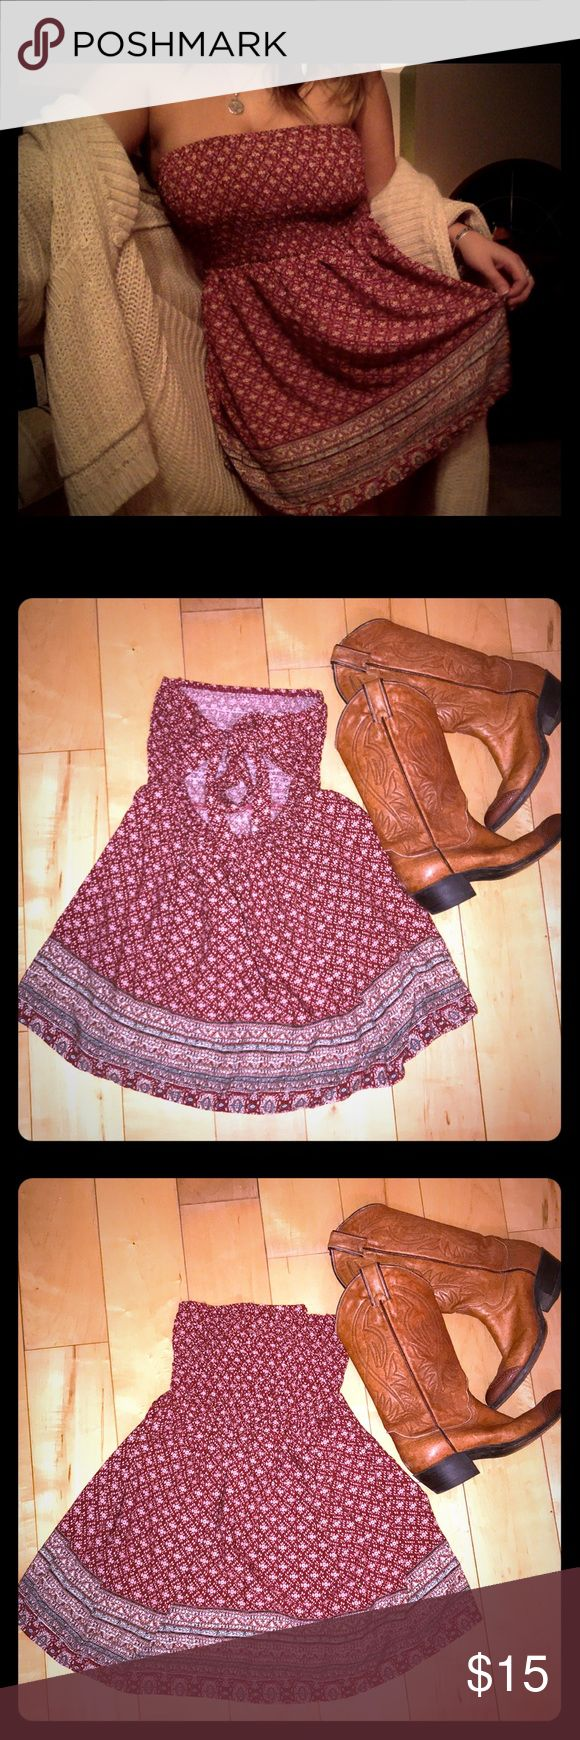 ✌🏻Boho Chic Dress✌🏻 ⭐️PERFECT CONDITION ⭐️  No size tag, but definitely fits as a medium or small Elastic adjustable breast crotchet  Burgundy color with cream accents   🌟TAGGED FREE PEOPLE FOR EXPOSURE, NOT SURE OF BRAND🌟  🌞PERFECT FOR SUMMER FESTIVALS 🌞 — •Offers accepted and encouraged  •Orders guaranteed to ship within 1-2 days  •Bundle for a private discount of at least 10% •Questions always welcomed! Free People Dresses Strapless